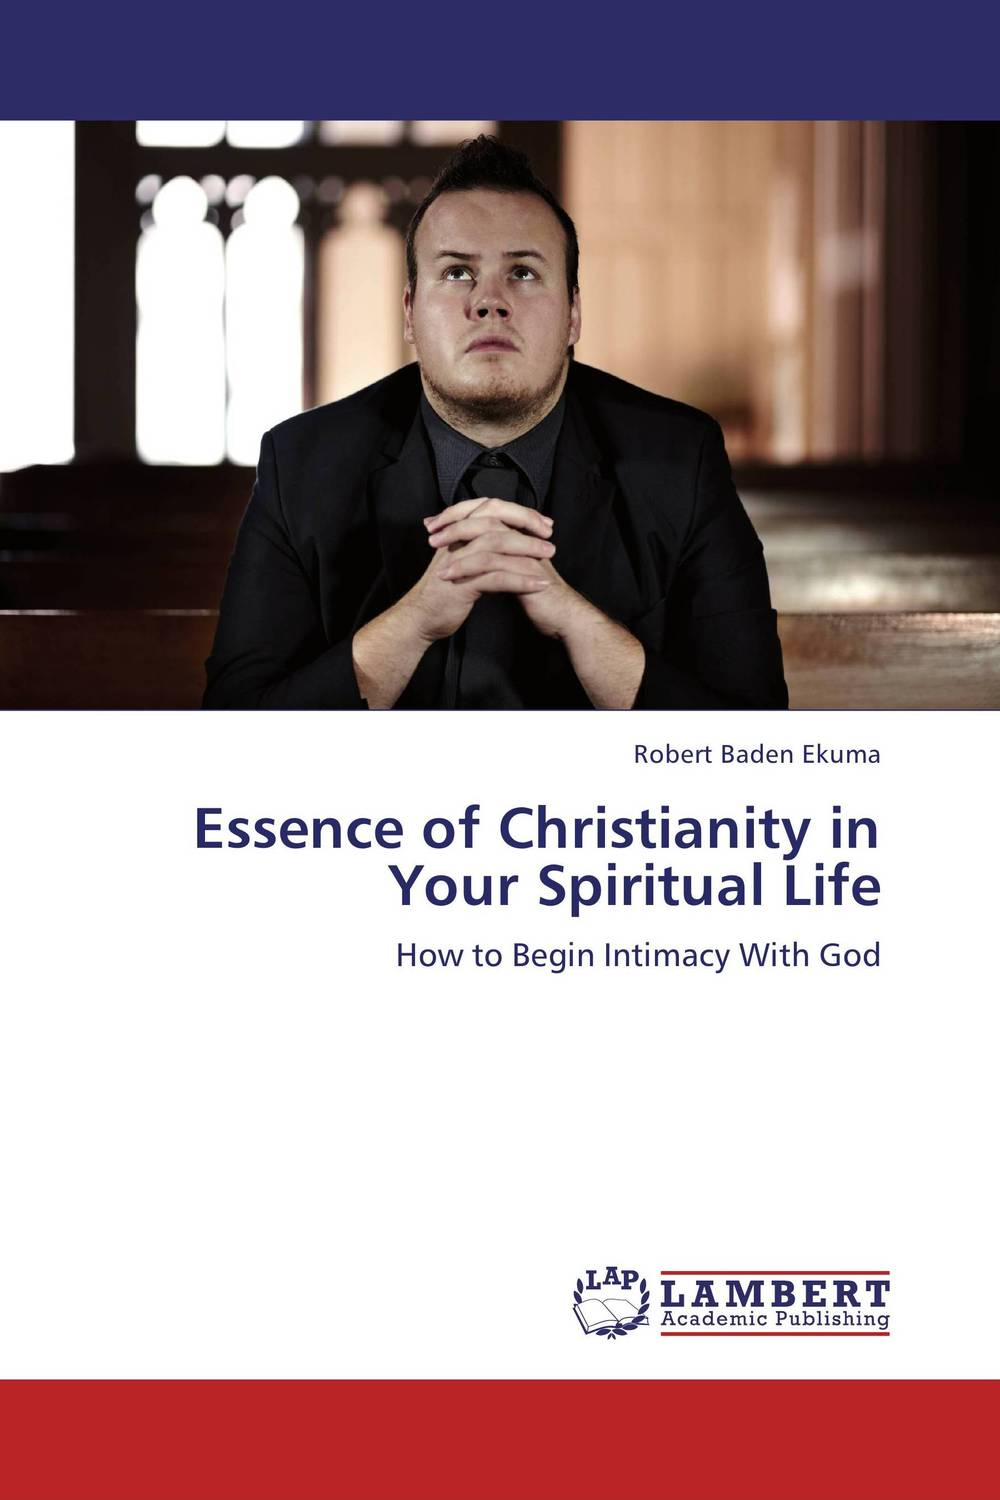 Essence of Christianity in Your Spiritual Life knowing in our bones